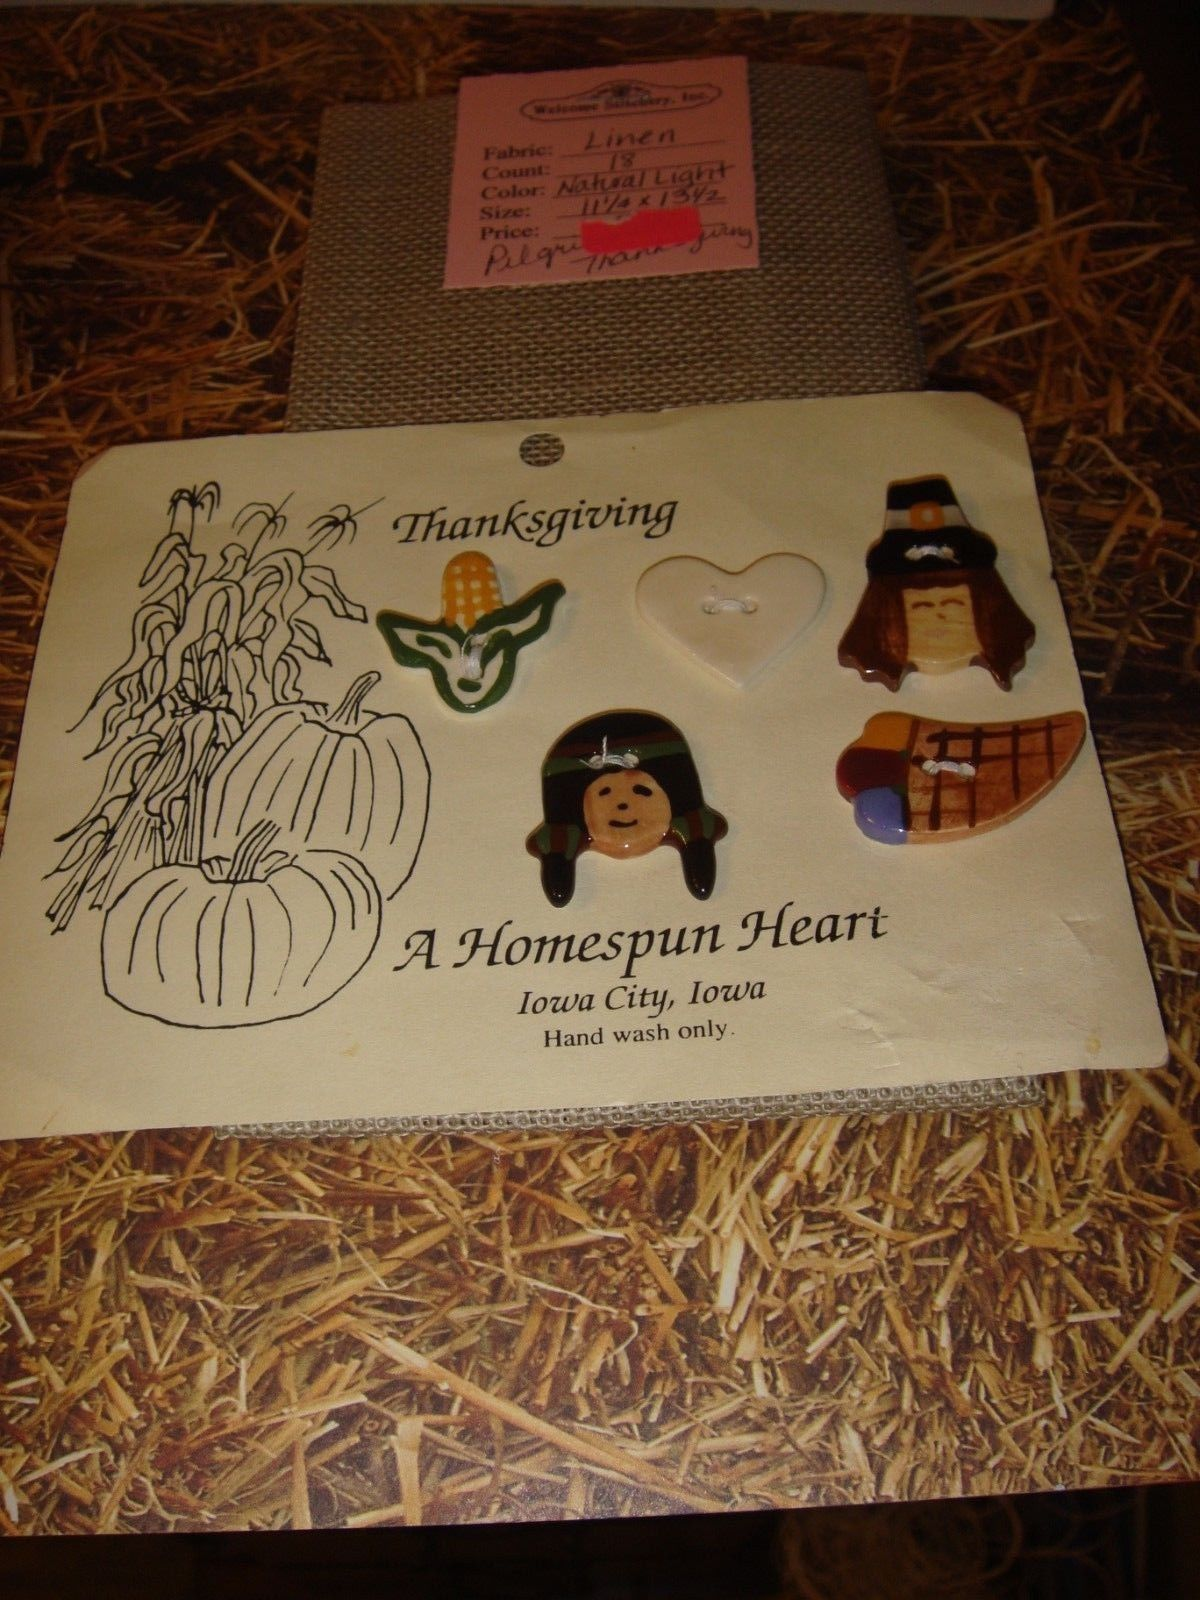 Shepards Bush Pattern Book, 18ct. Fabric And Homespun Heart Thanksgiving Buttons image 3